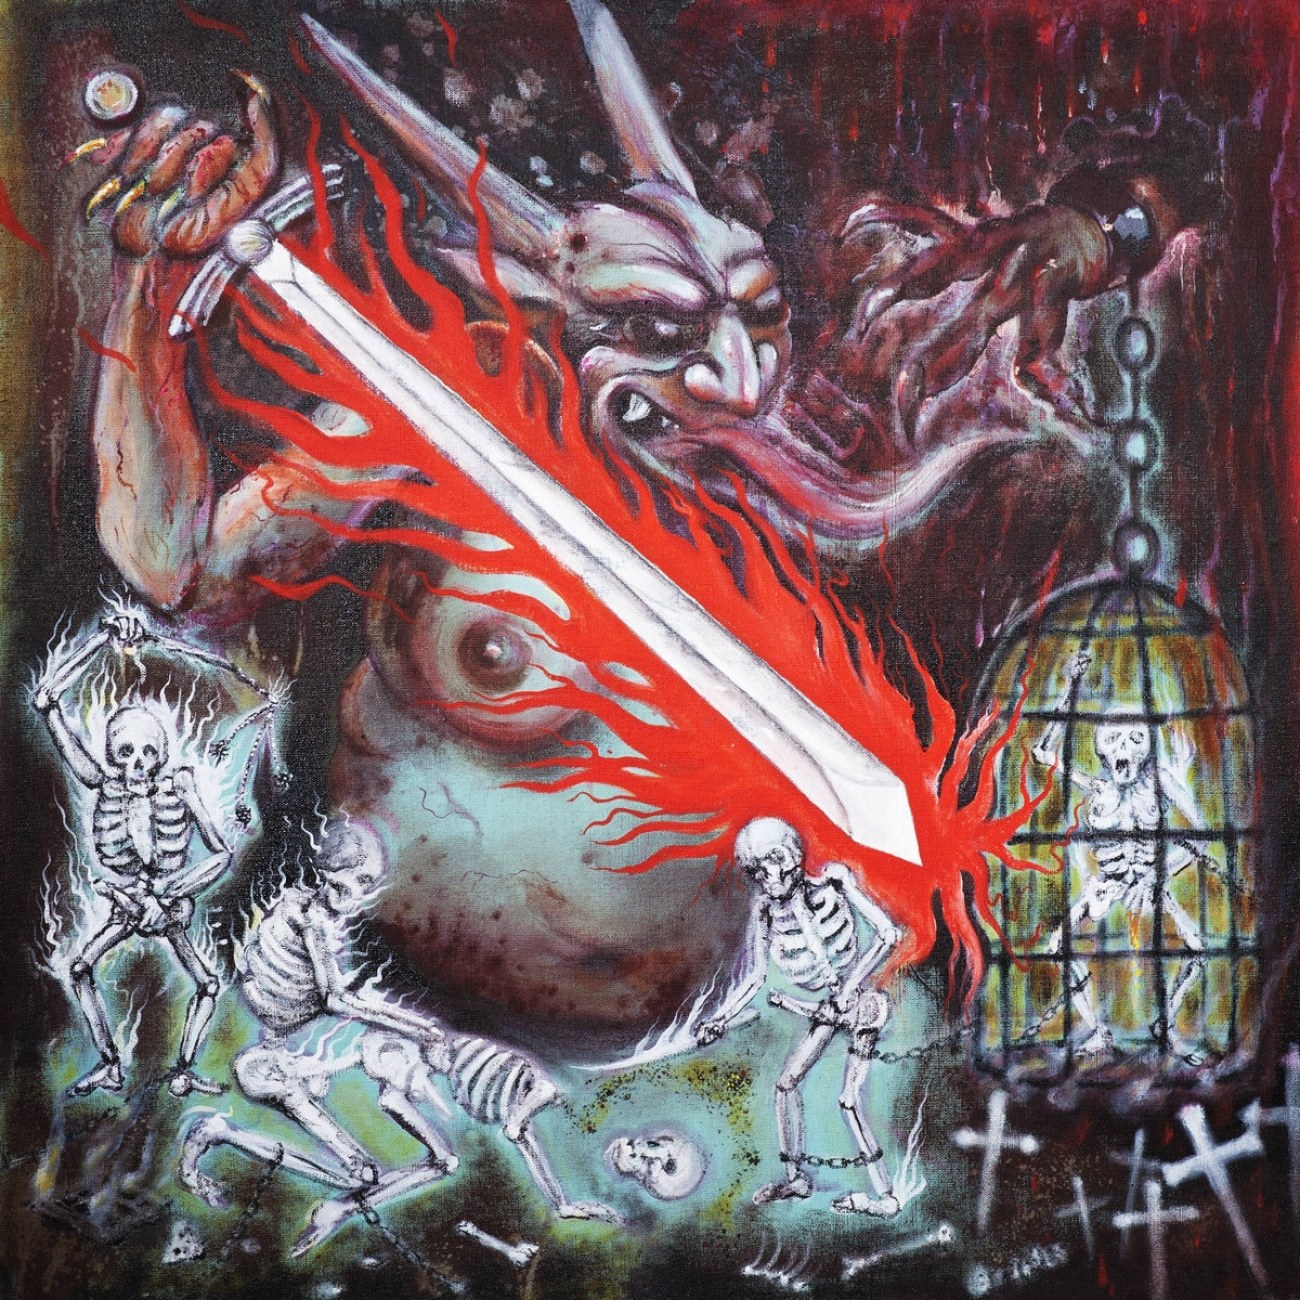 Reviews for Impaled Nazarene - Vigorous and Liberating Death